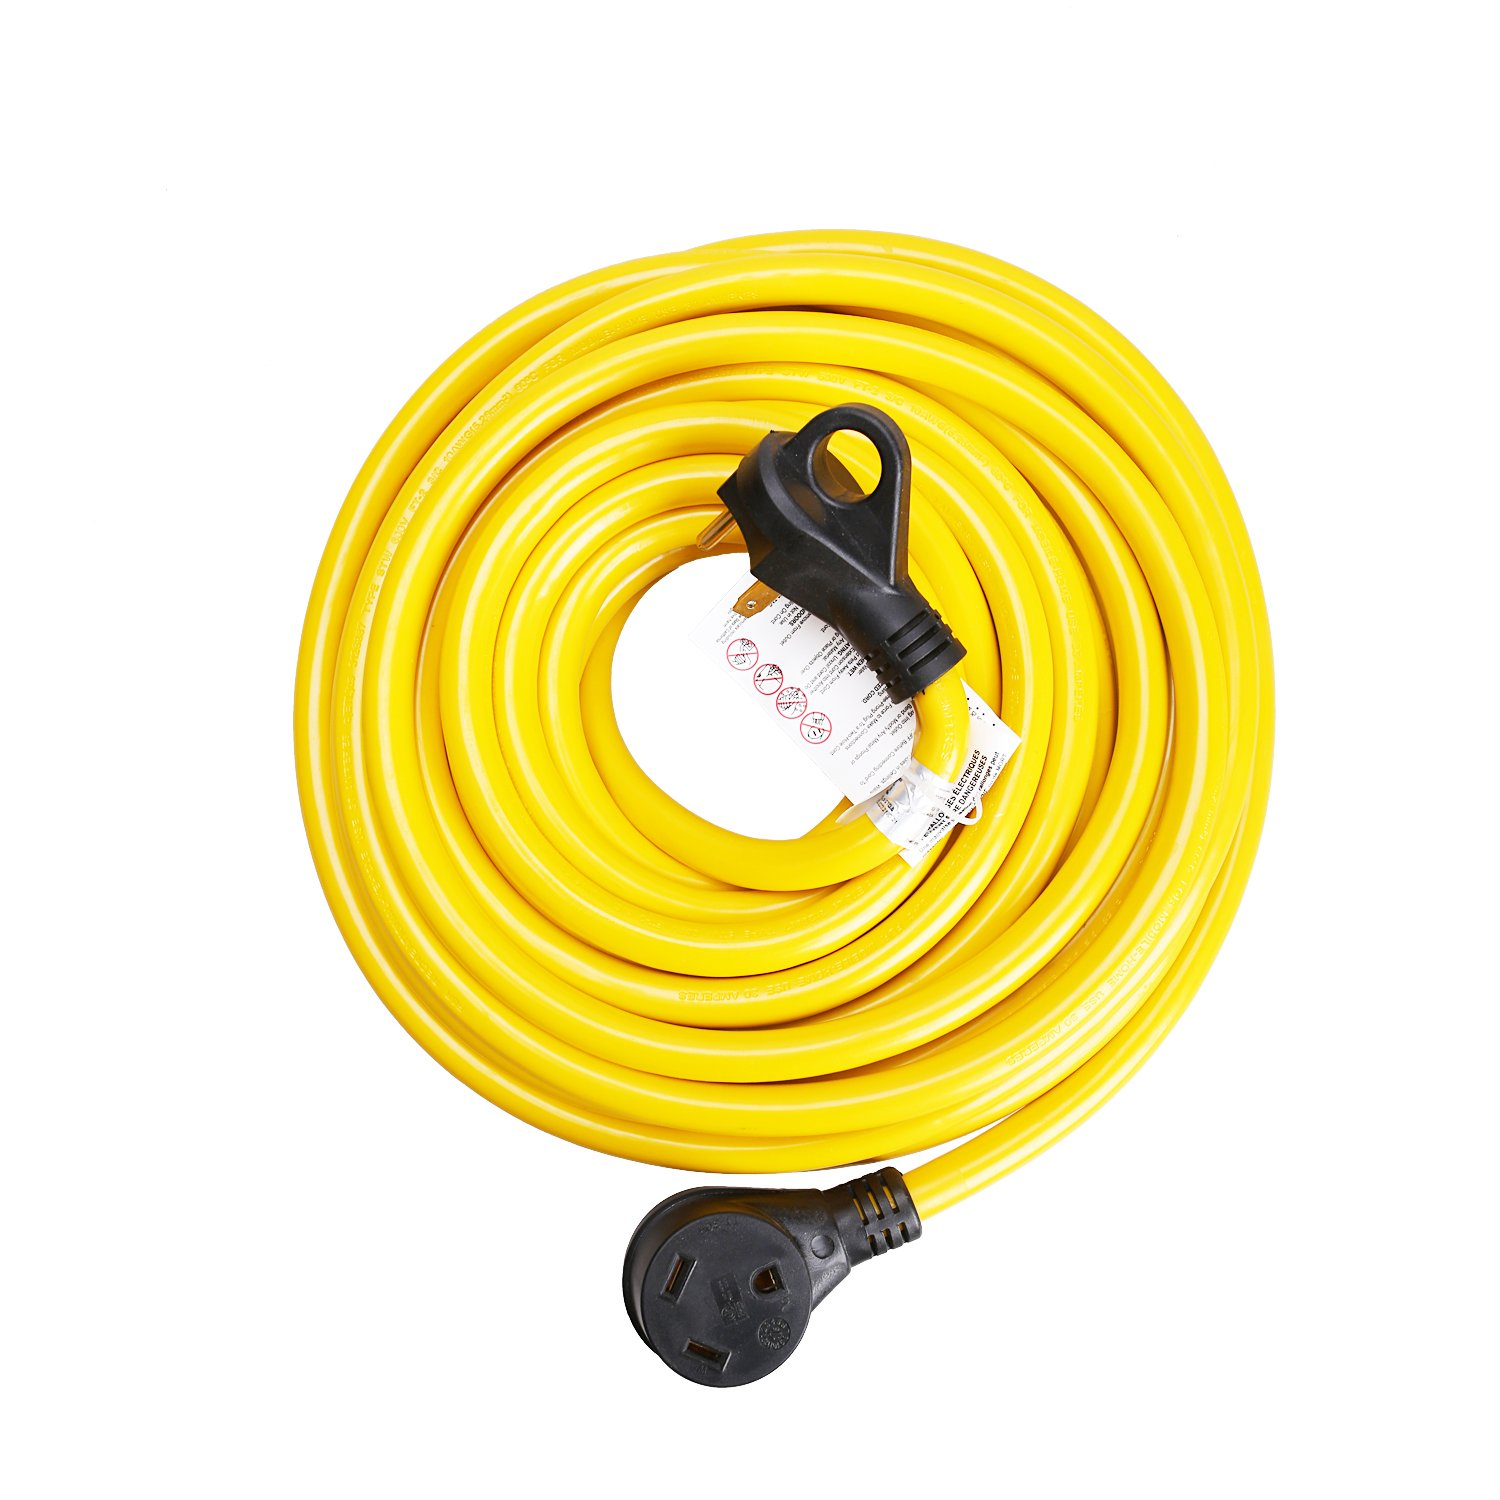 50ft 30Amp RV Extension Cord, Easy Unplug Design with Cord Organizer, 10 Gauge 30A,3 Wire)